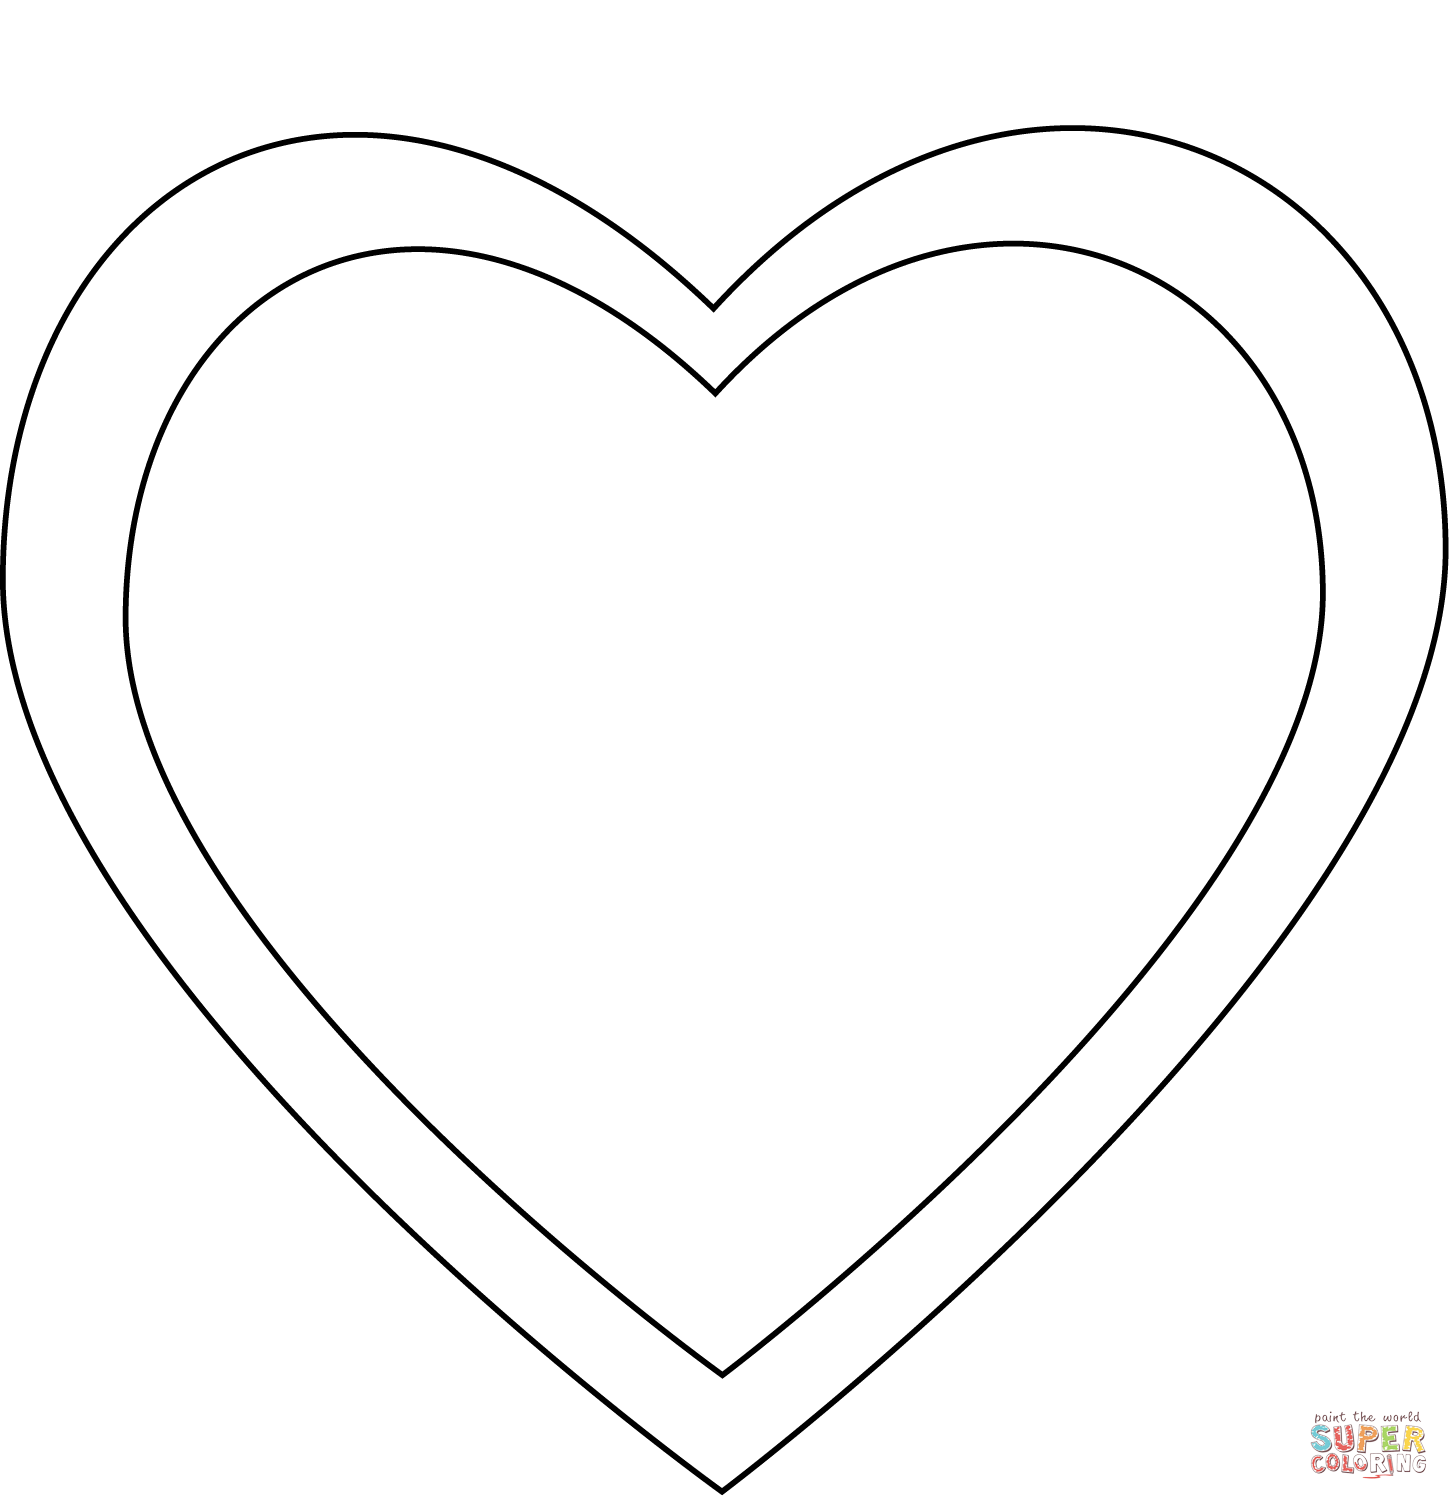 Simple Heart Coloring Page